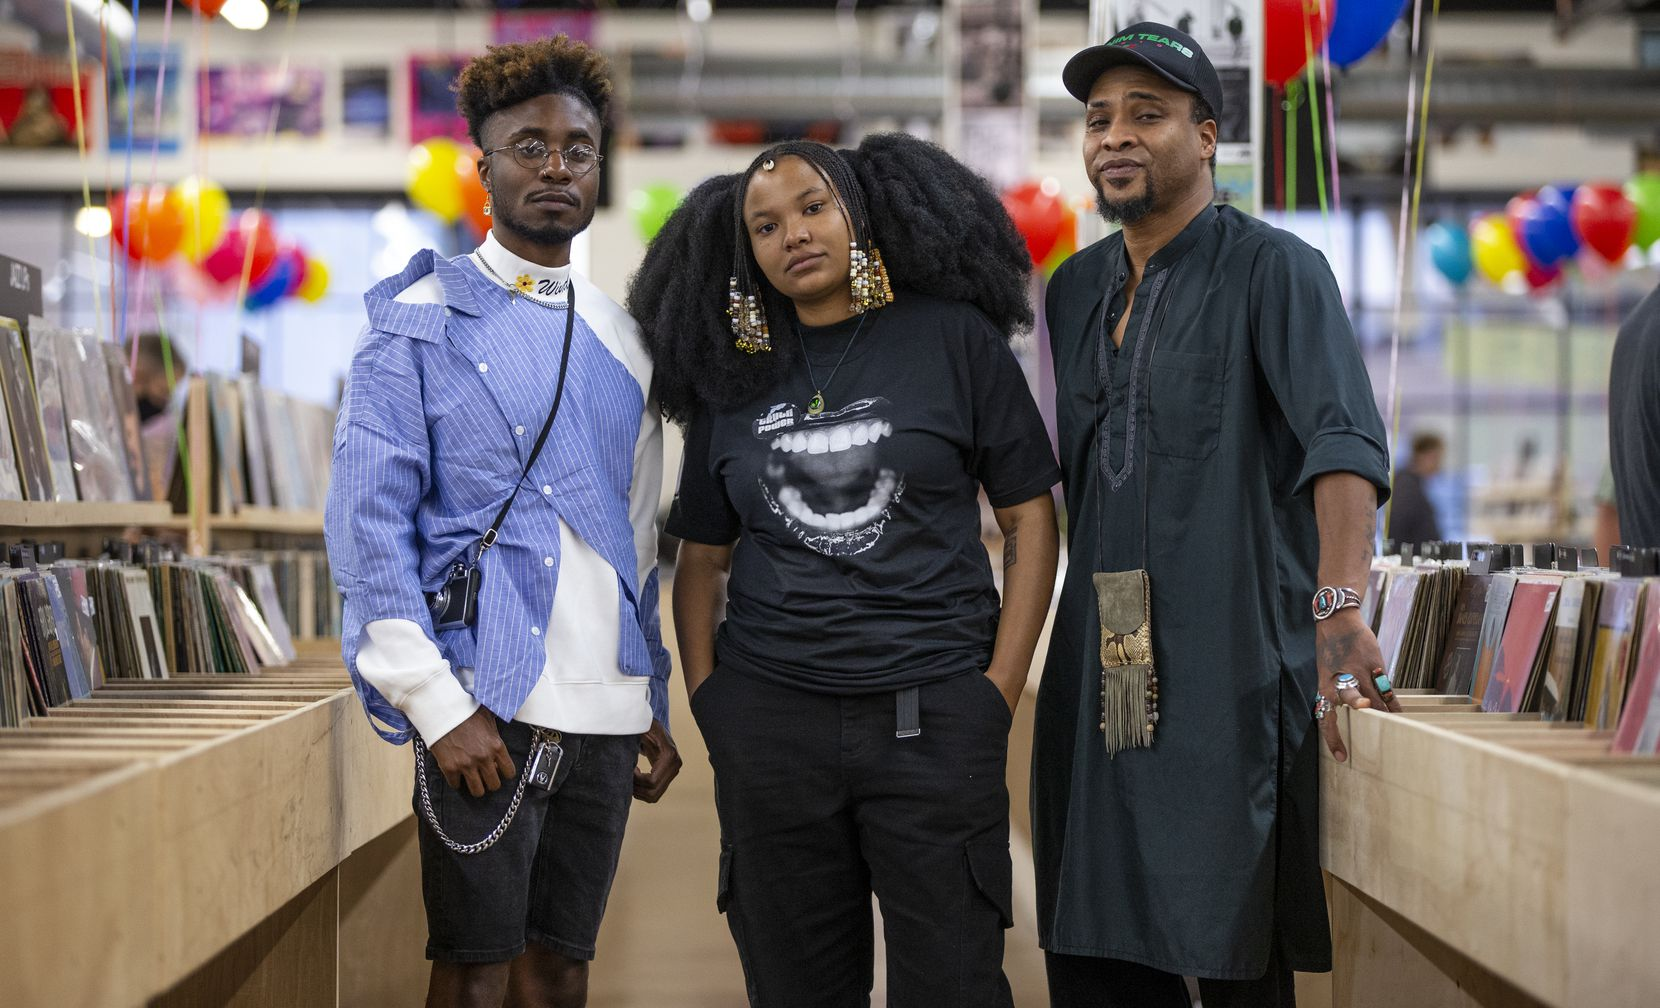 Truth To Power artists Cameron McCloud (left), Flower Child (center) and Keite Young pose for a photo at Josey Records on Saturday.